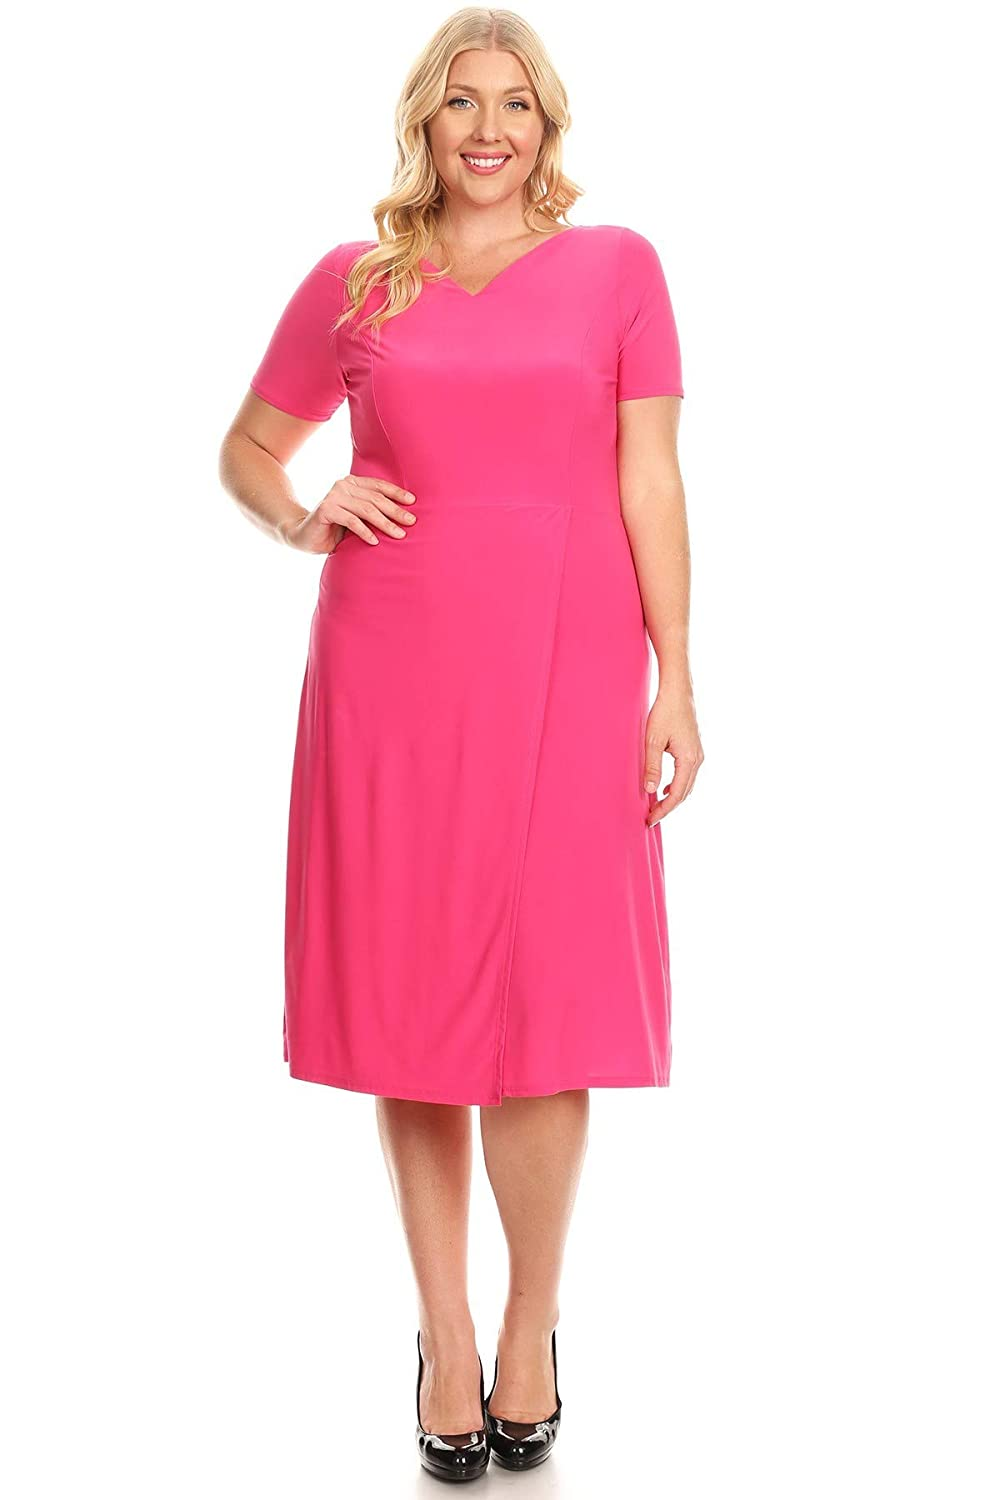 Pastel by Vivienne Womens V-Neck Fit and Flare Midi Plus Dress